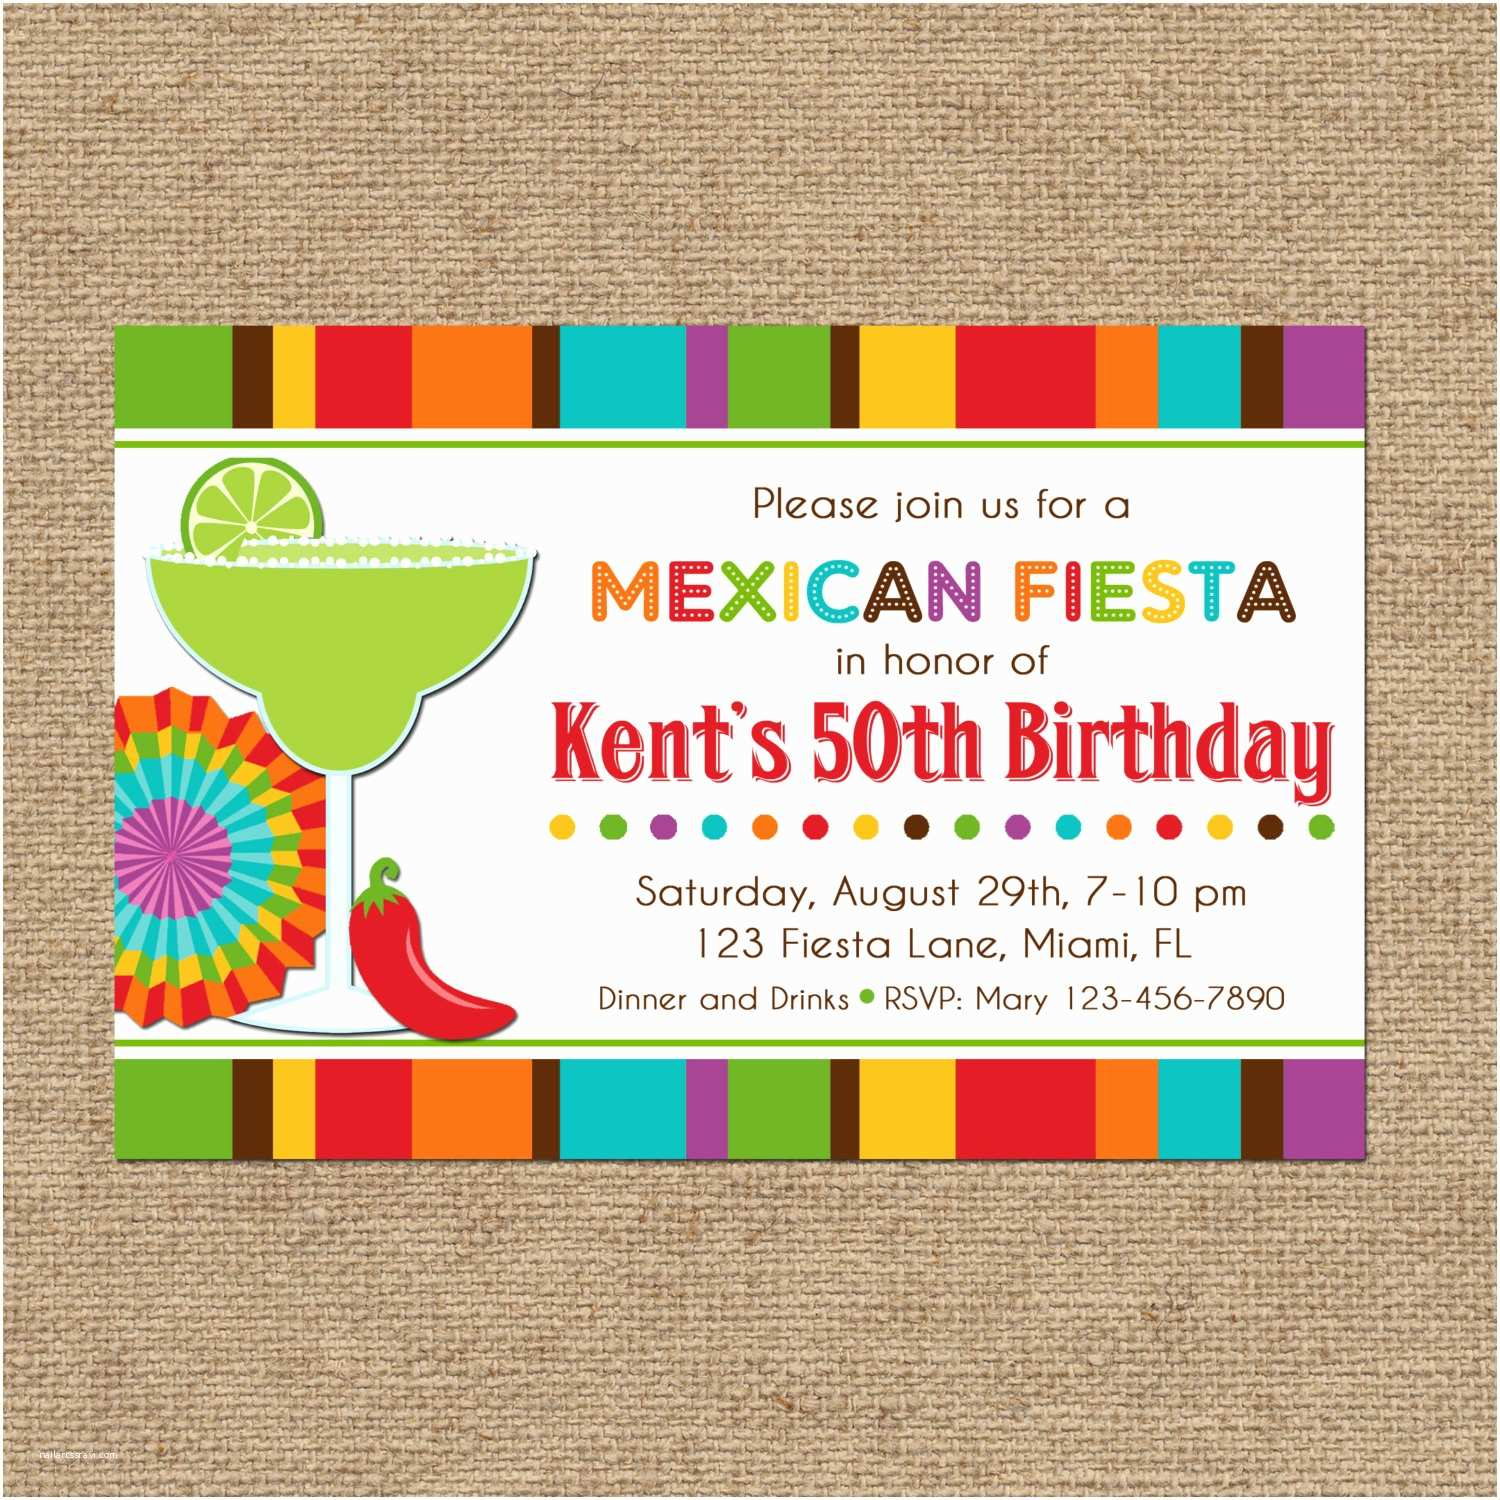 Fiesta Party Invitations Mexican Fiesta Party Invitation Printable or Printed with Free